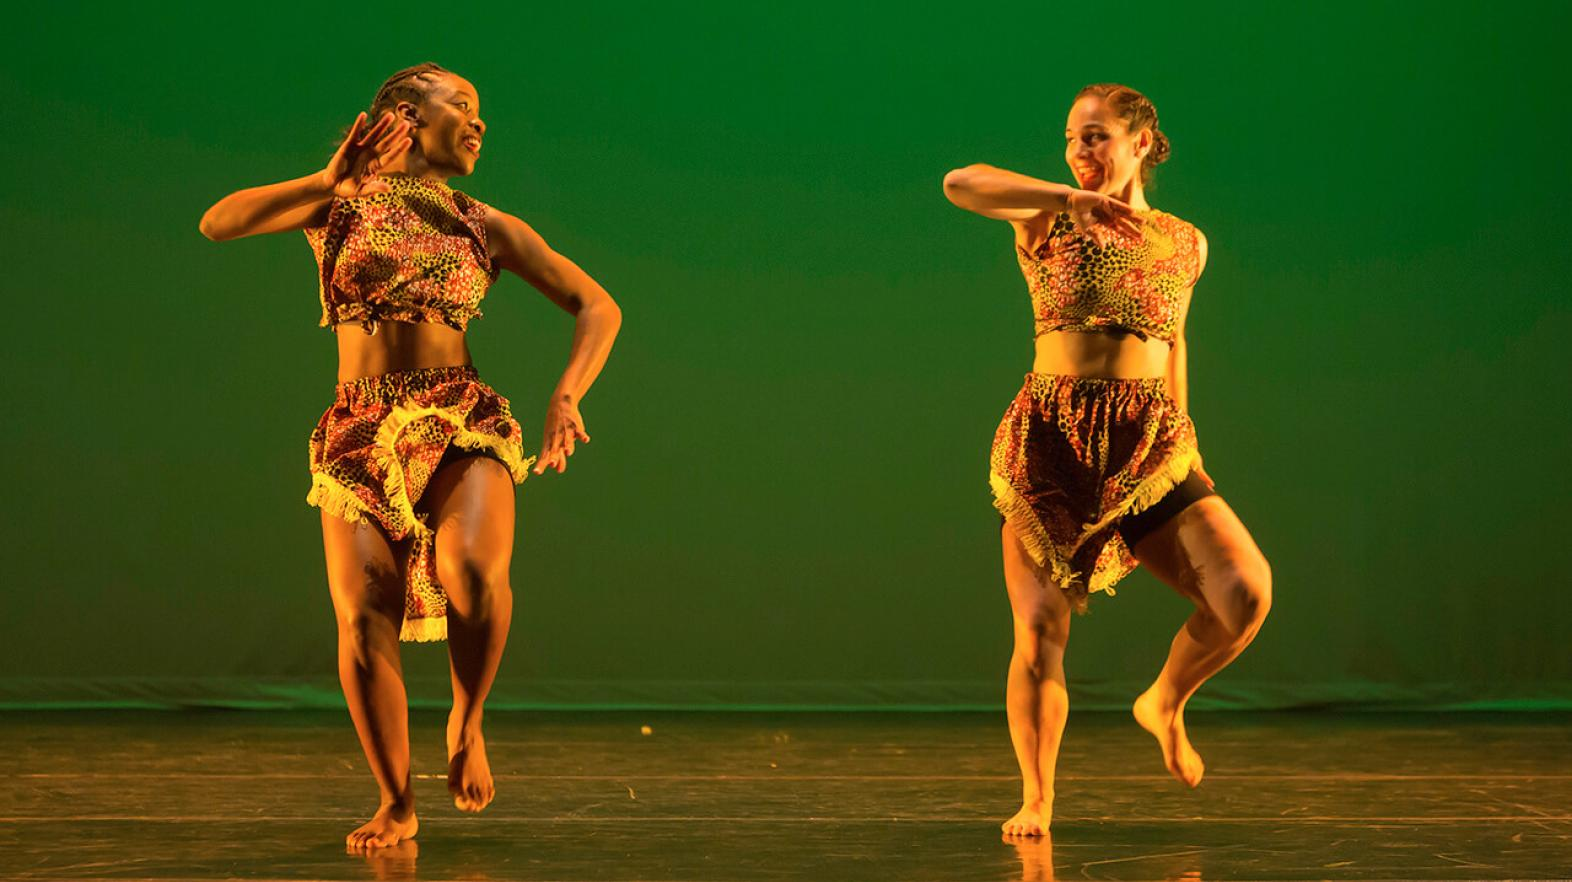 Two dancers perform an African Dance piece on stage